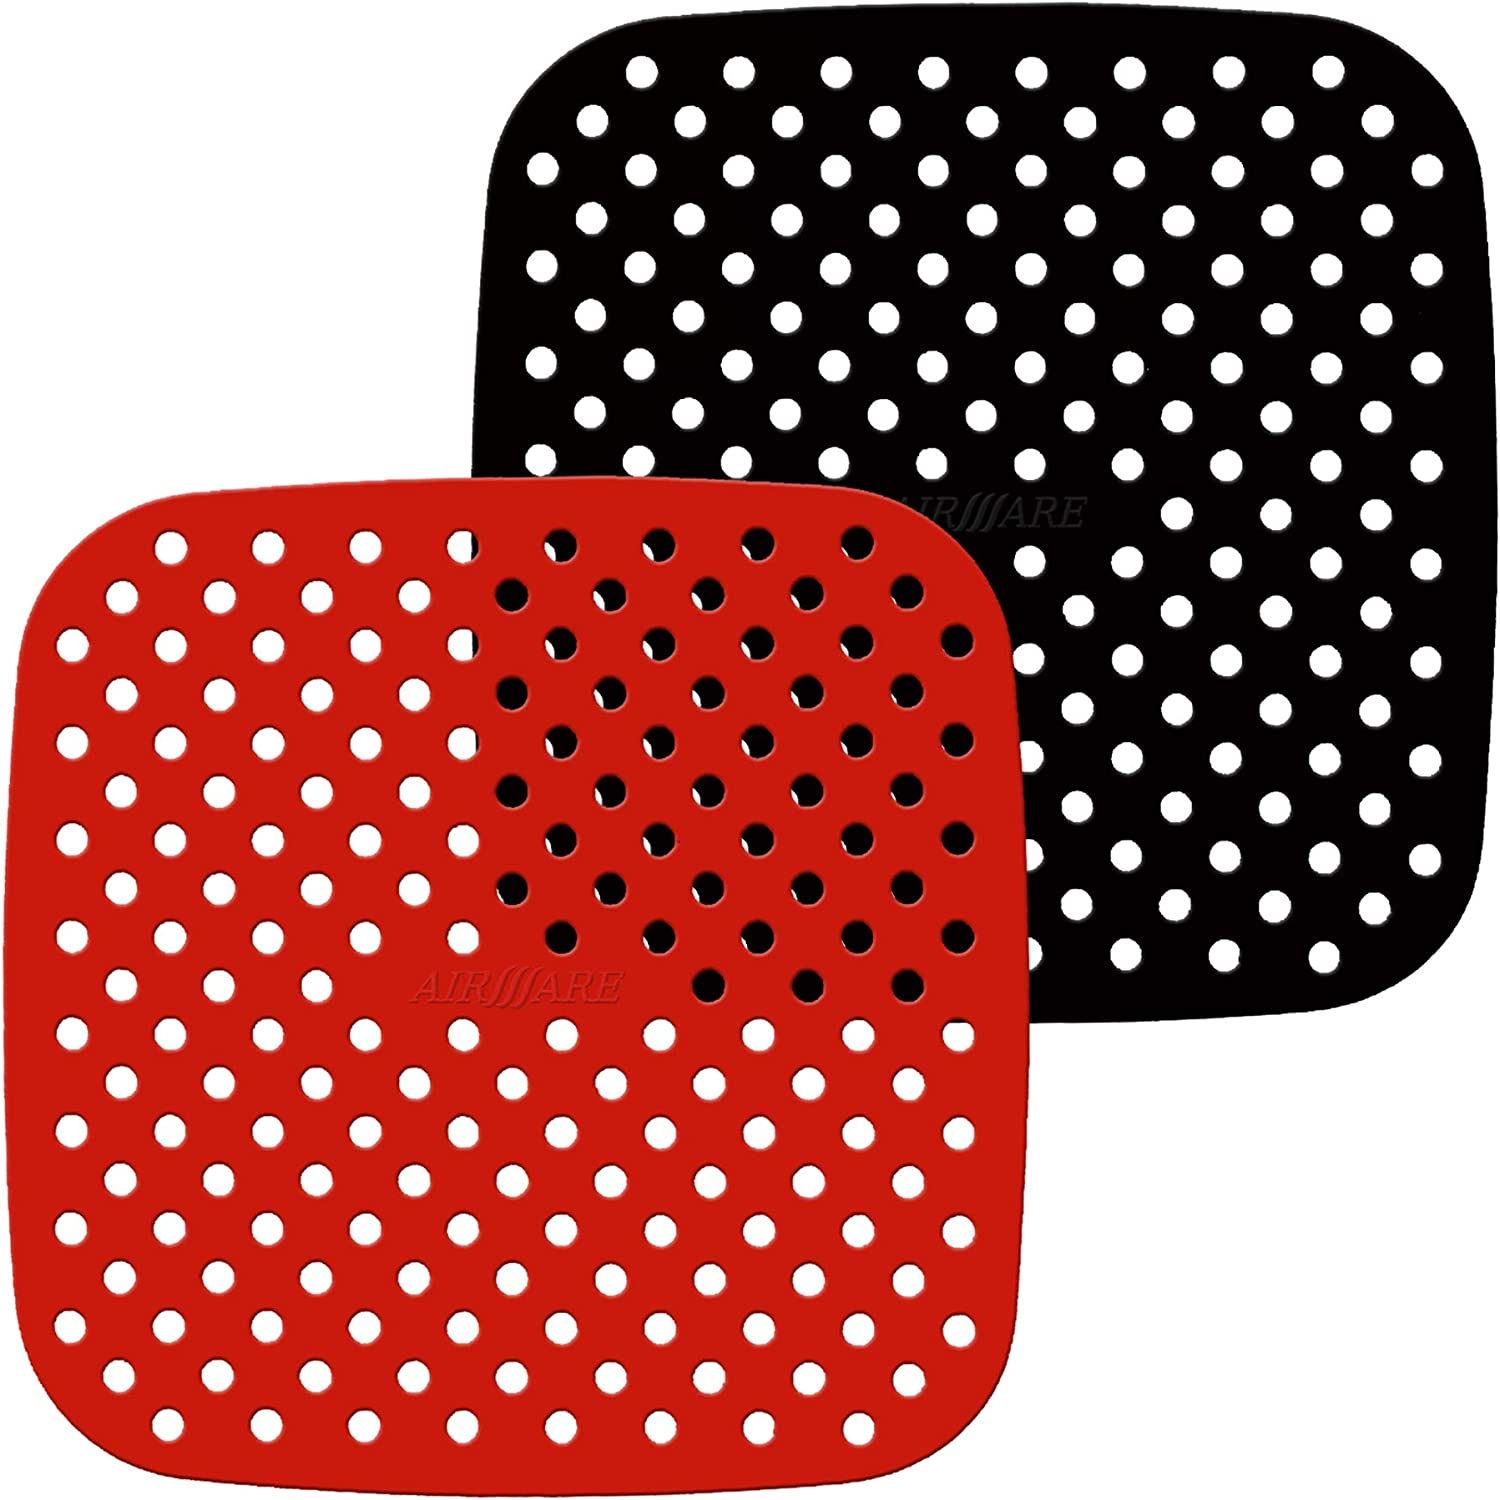 Airware Reusable Air Fryer Liners – 8.5-Inch Square, Non-Stick Silicone Air Fryer Basket Mats | Air Fryer Accessories For Cosori, Instant, NuWave, Philips, and More | BPA Free (2-Pack)